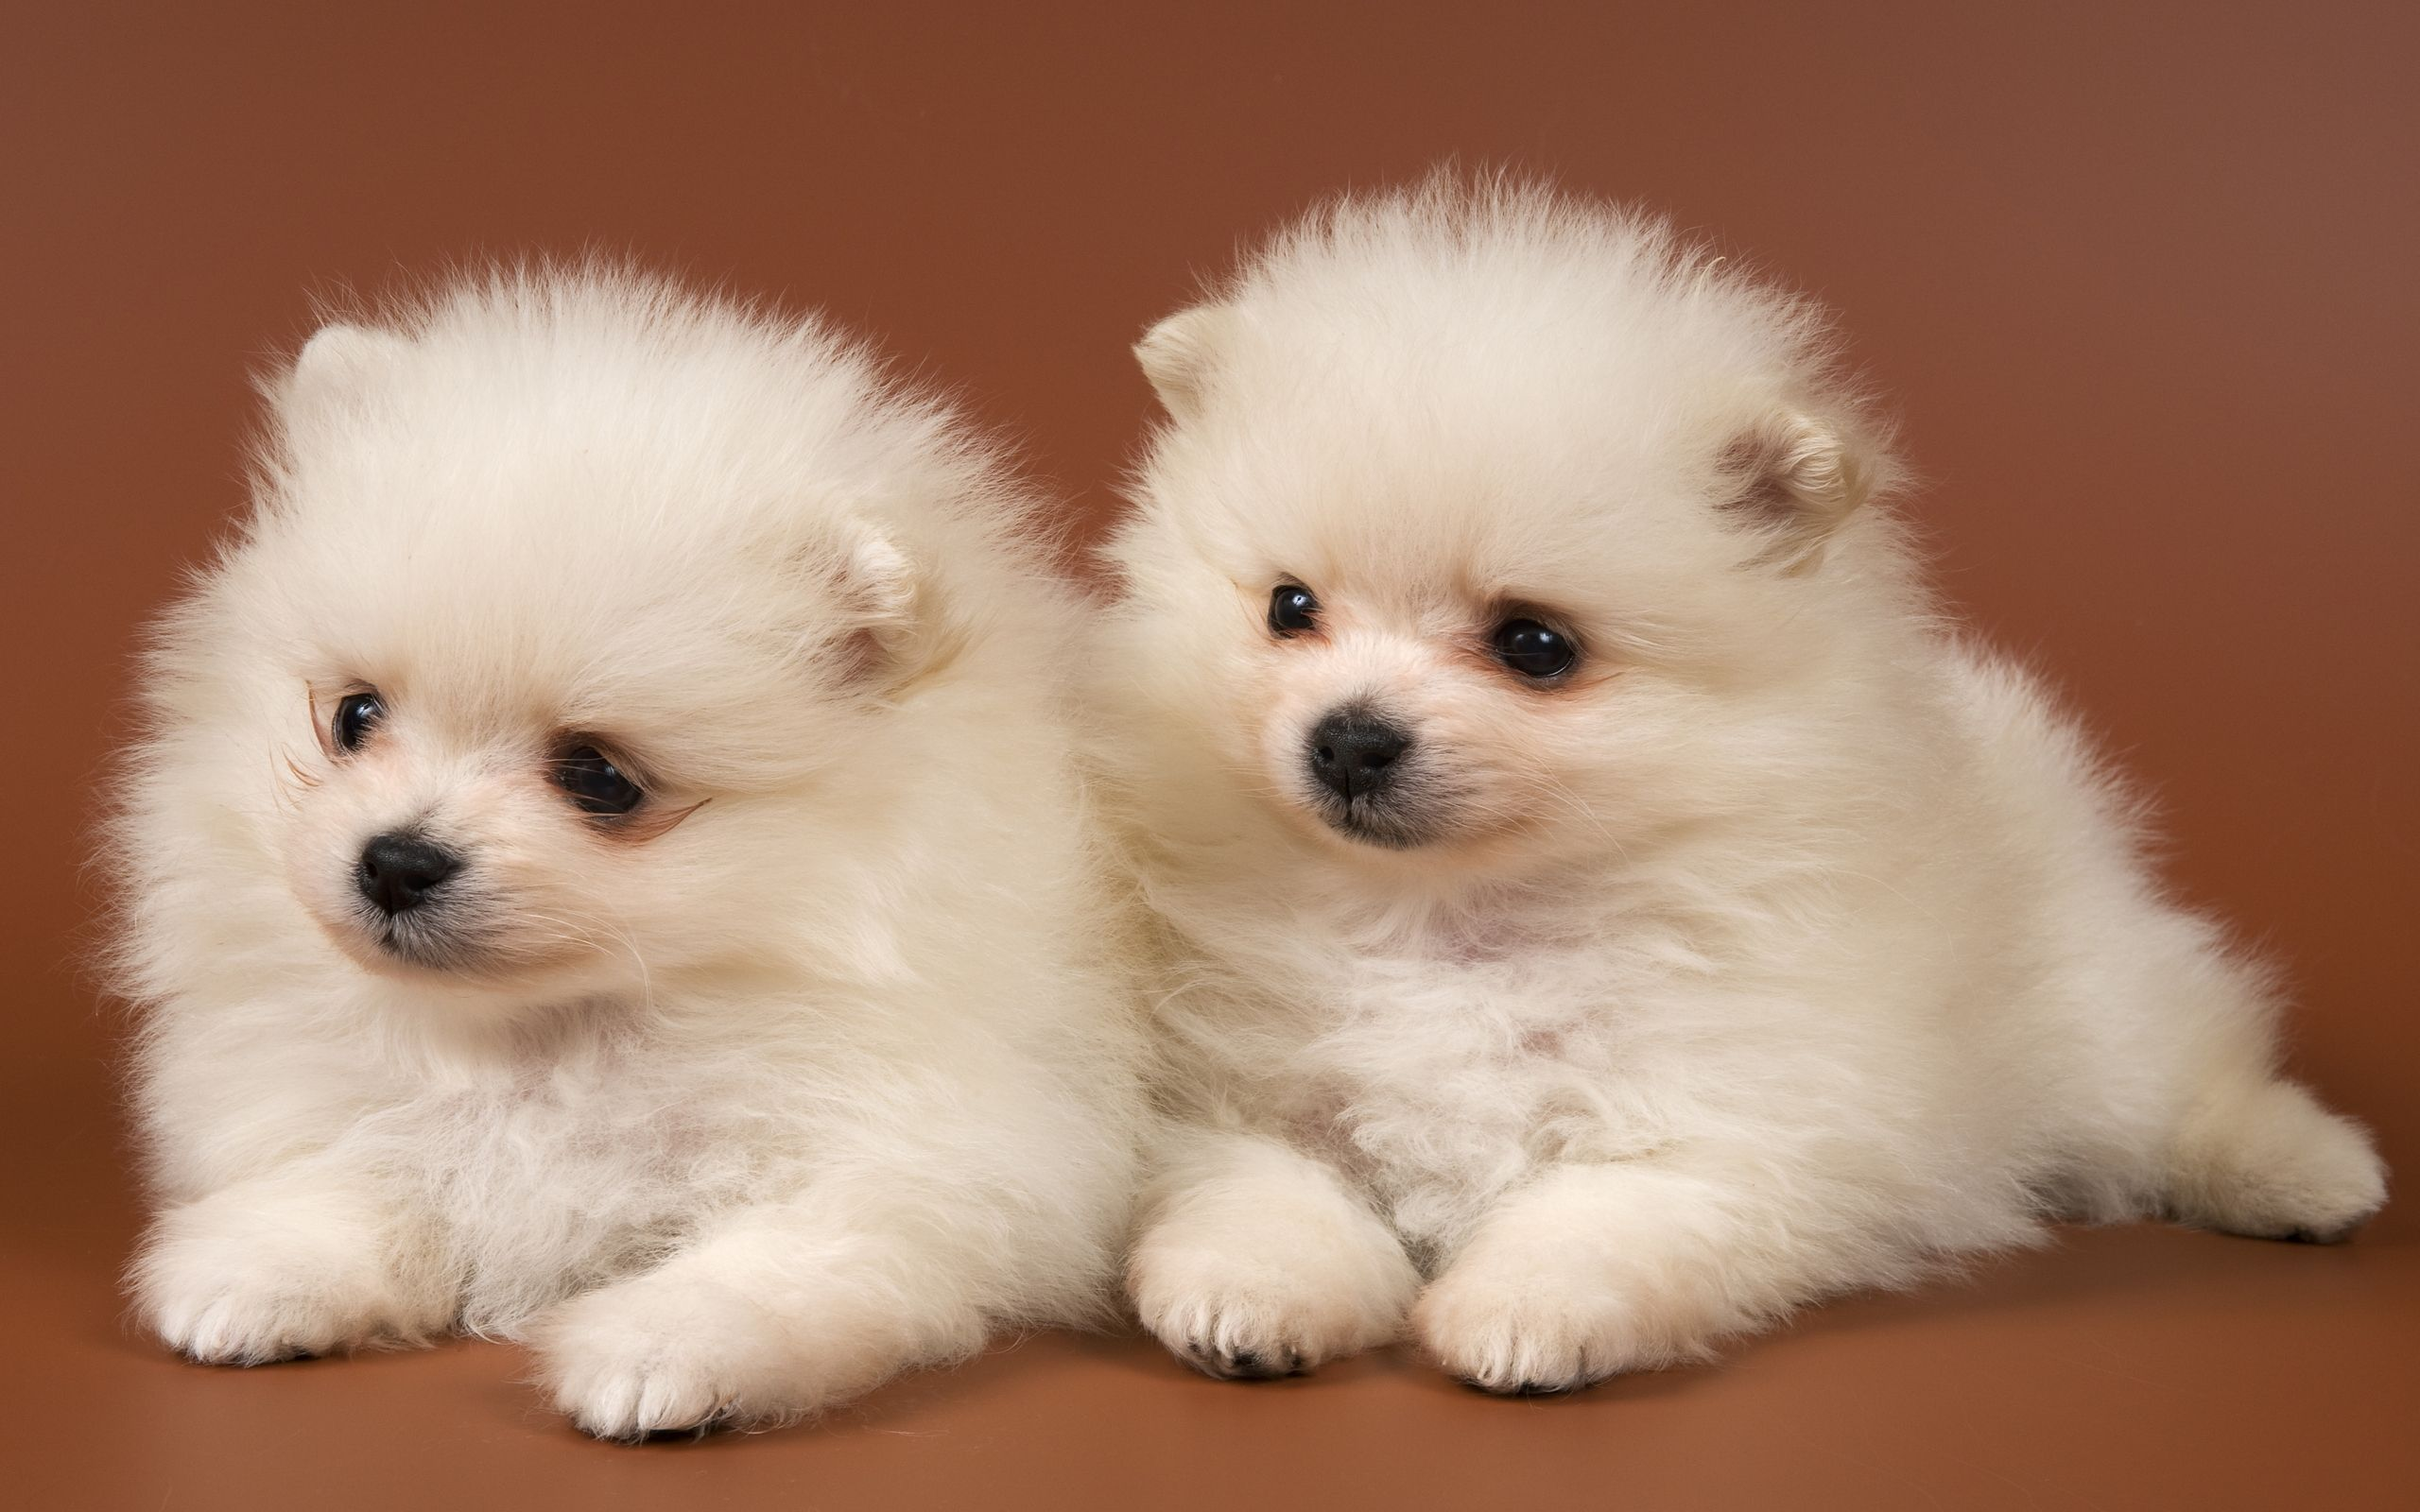 puppy poodles | poodle wallpapers | pinterest | dog wallpaper, baby